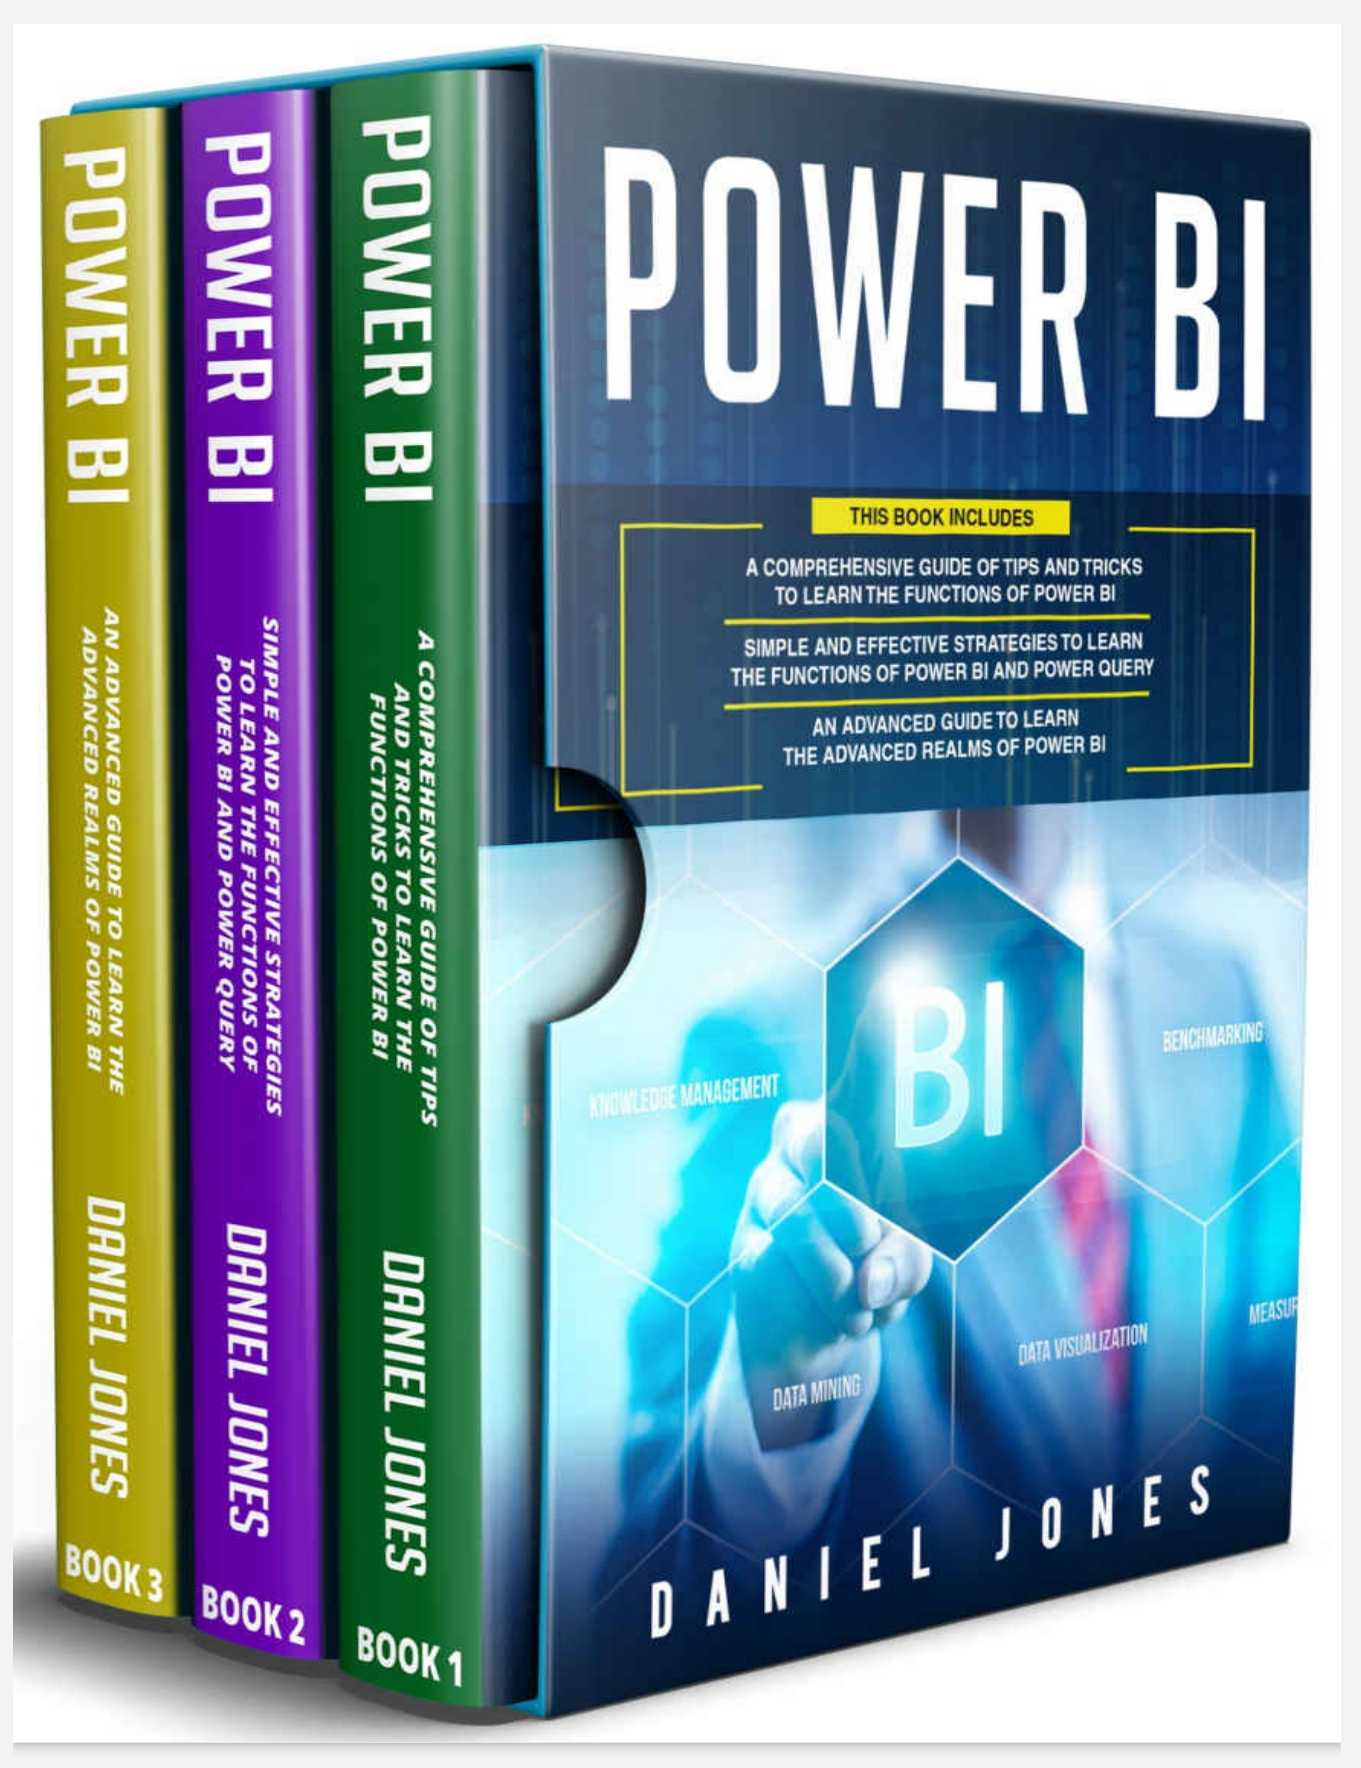 Power BI: 3 in 1- Comprehensive Guide of Tips and Tricks to Learn the Functions of Power BI+ Simple and Effective Strategies+ Advanced Guide to Learn the Advanced Realms of Power BI